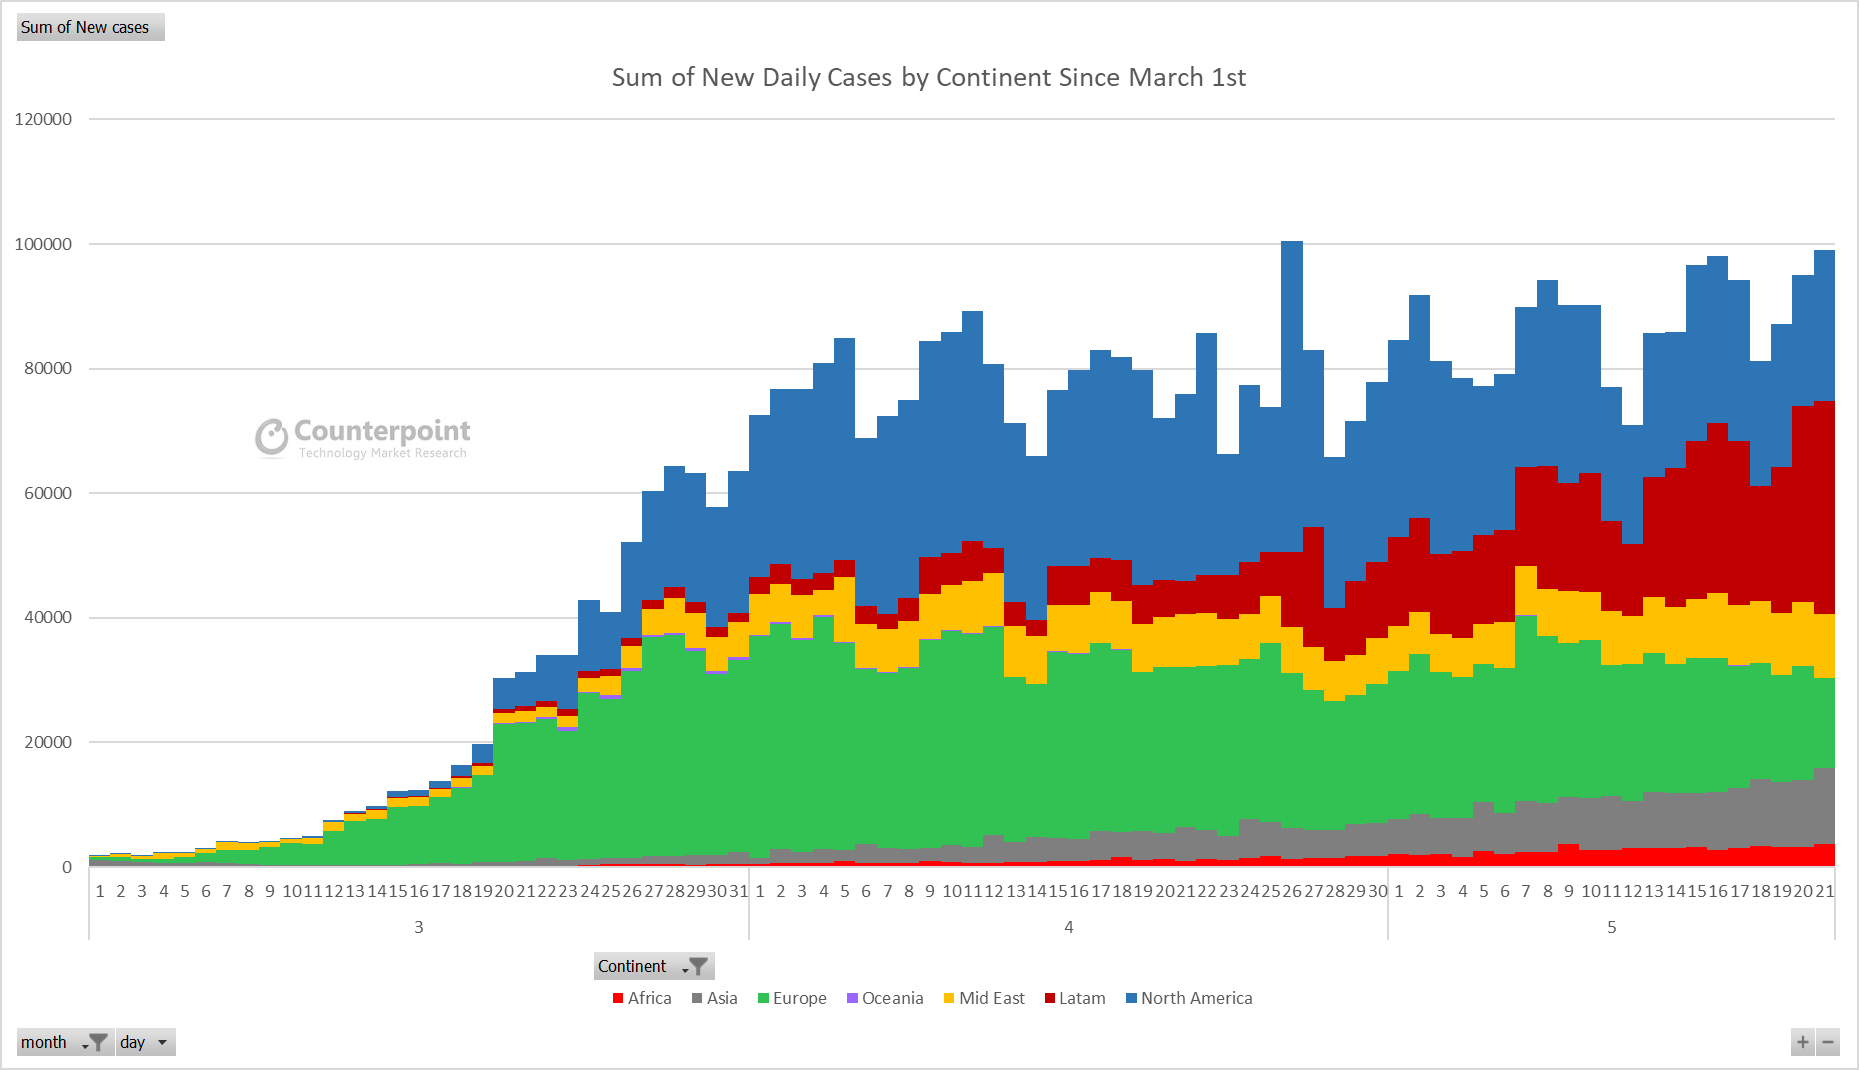 Counterpoint Sum of New Daily Cases by Continent Since March 1st - Week 21 Update